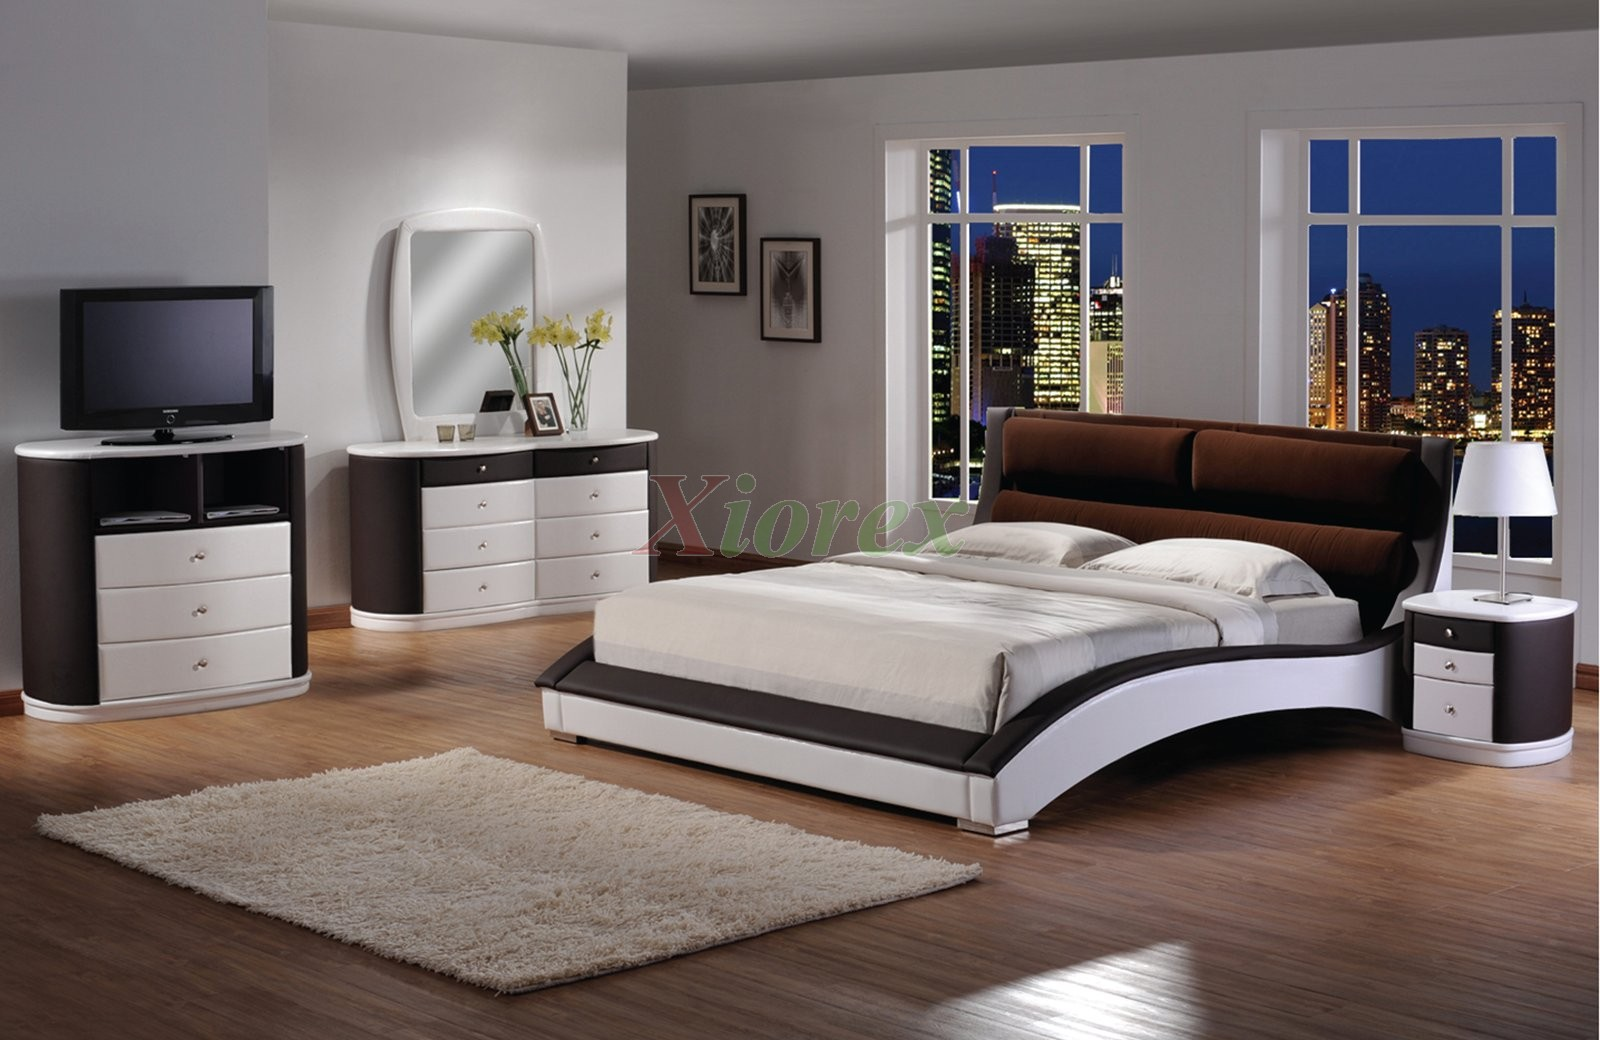 Platform bed furniture - Chic Upholstered Platform Bedroom Furniture Set 155 Xiorex Not Available In The Us